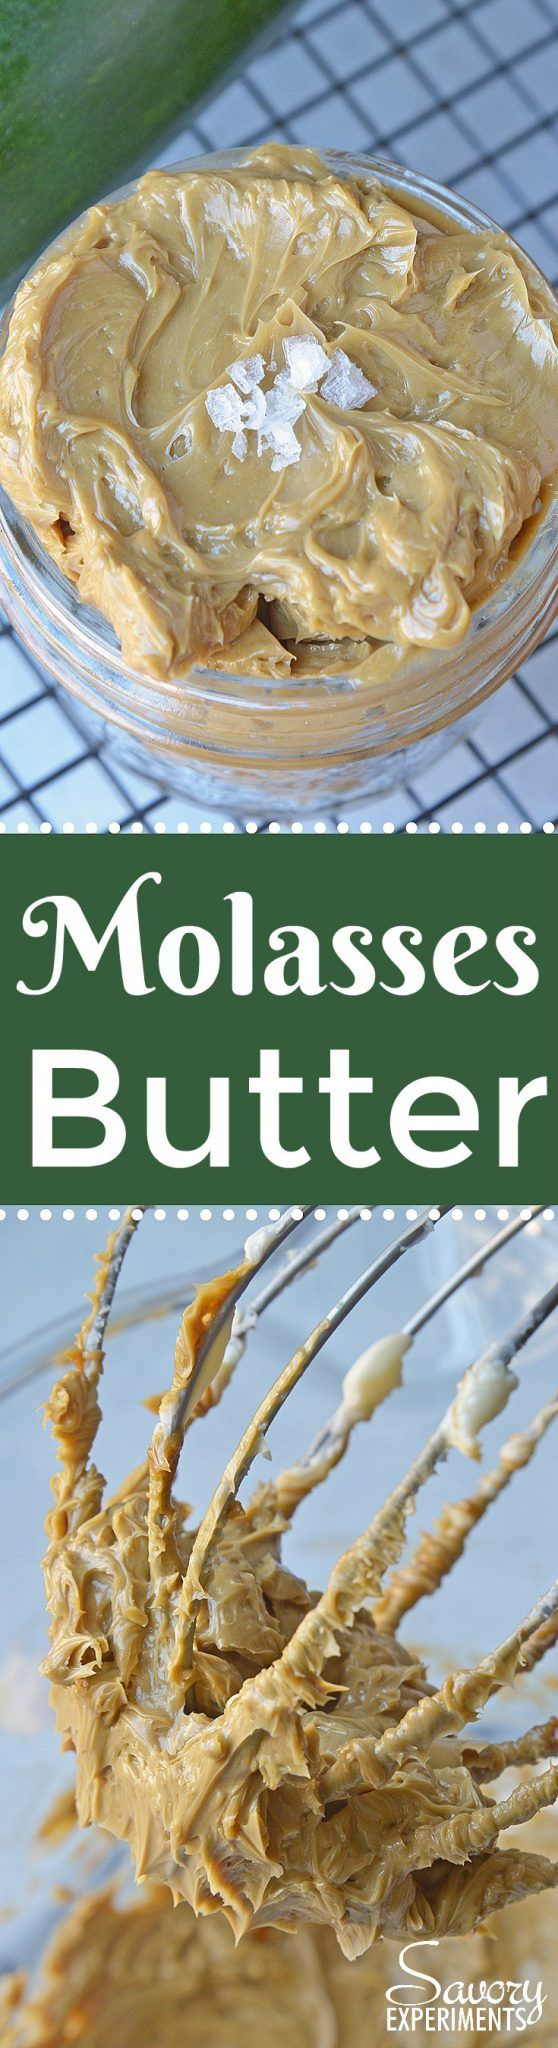 Molasses Butter is the blend of butter, molasses and one secret ingreidnet that will never guess until see the recipe! Served best on fresh zucchini bread! #homemadebutter #flavoredbutter www.savoryexperiments.com  via @savorycooking